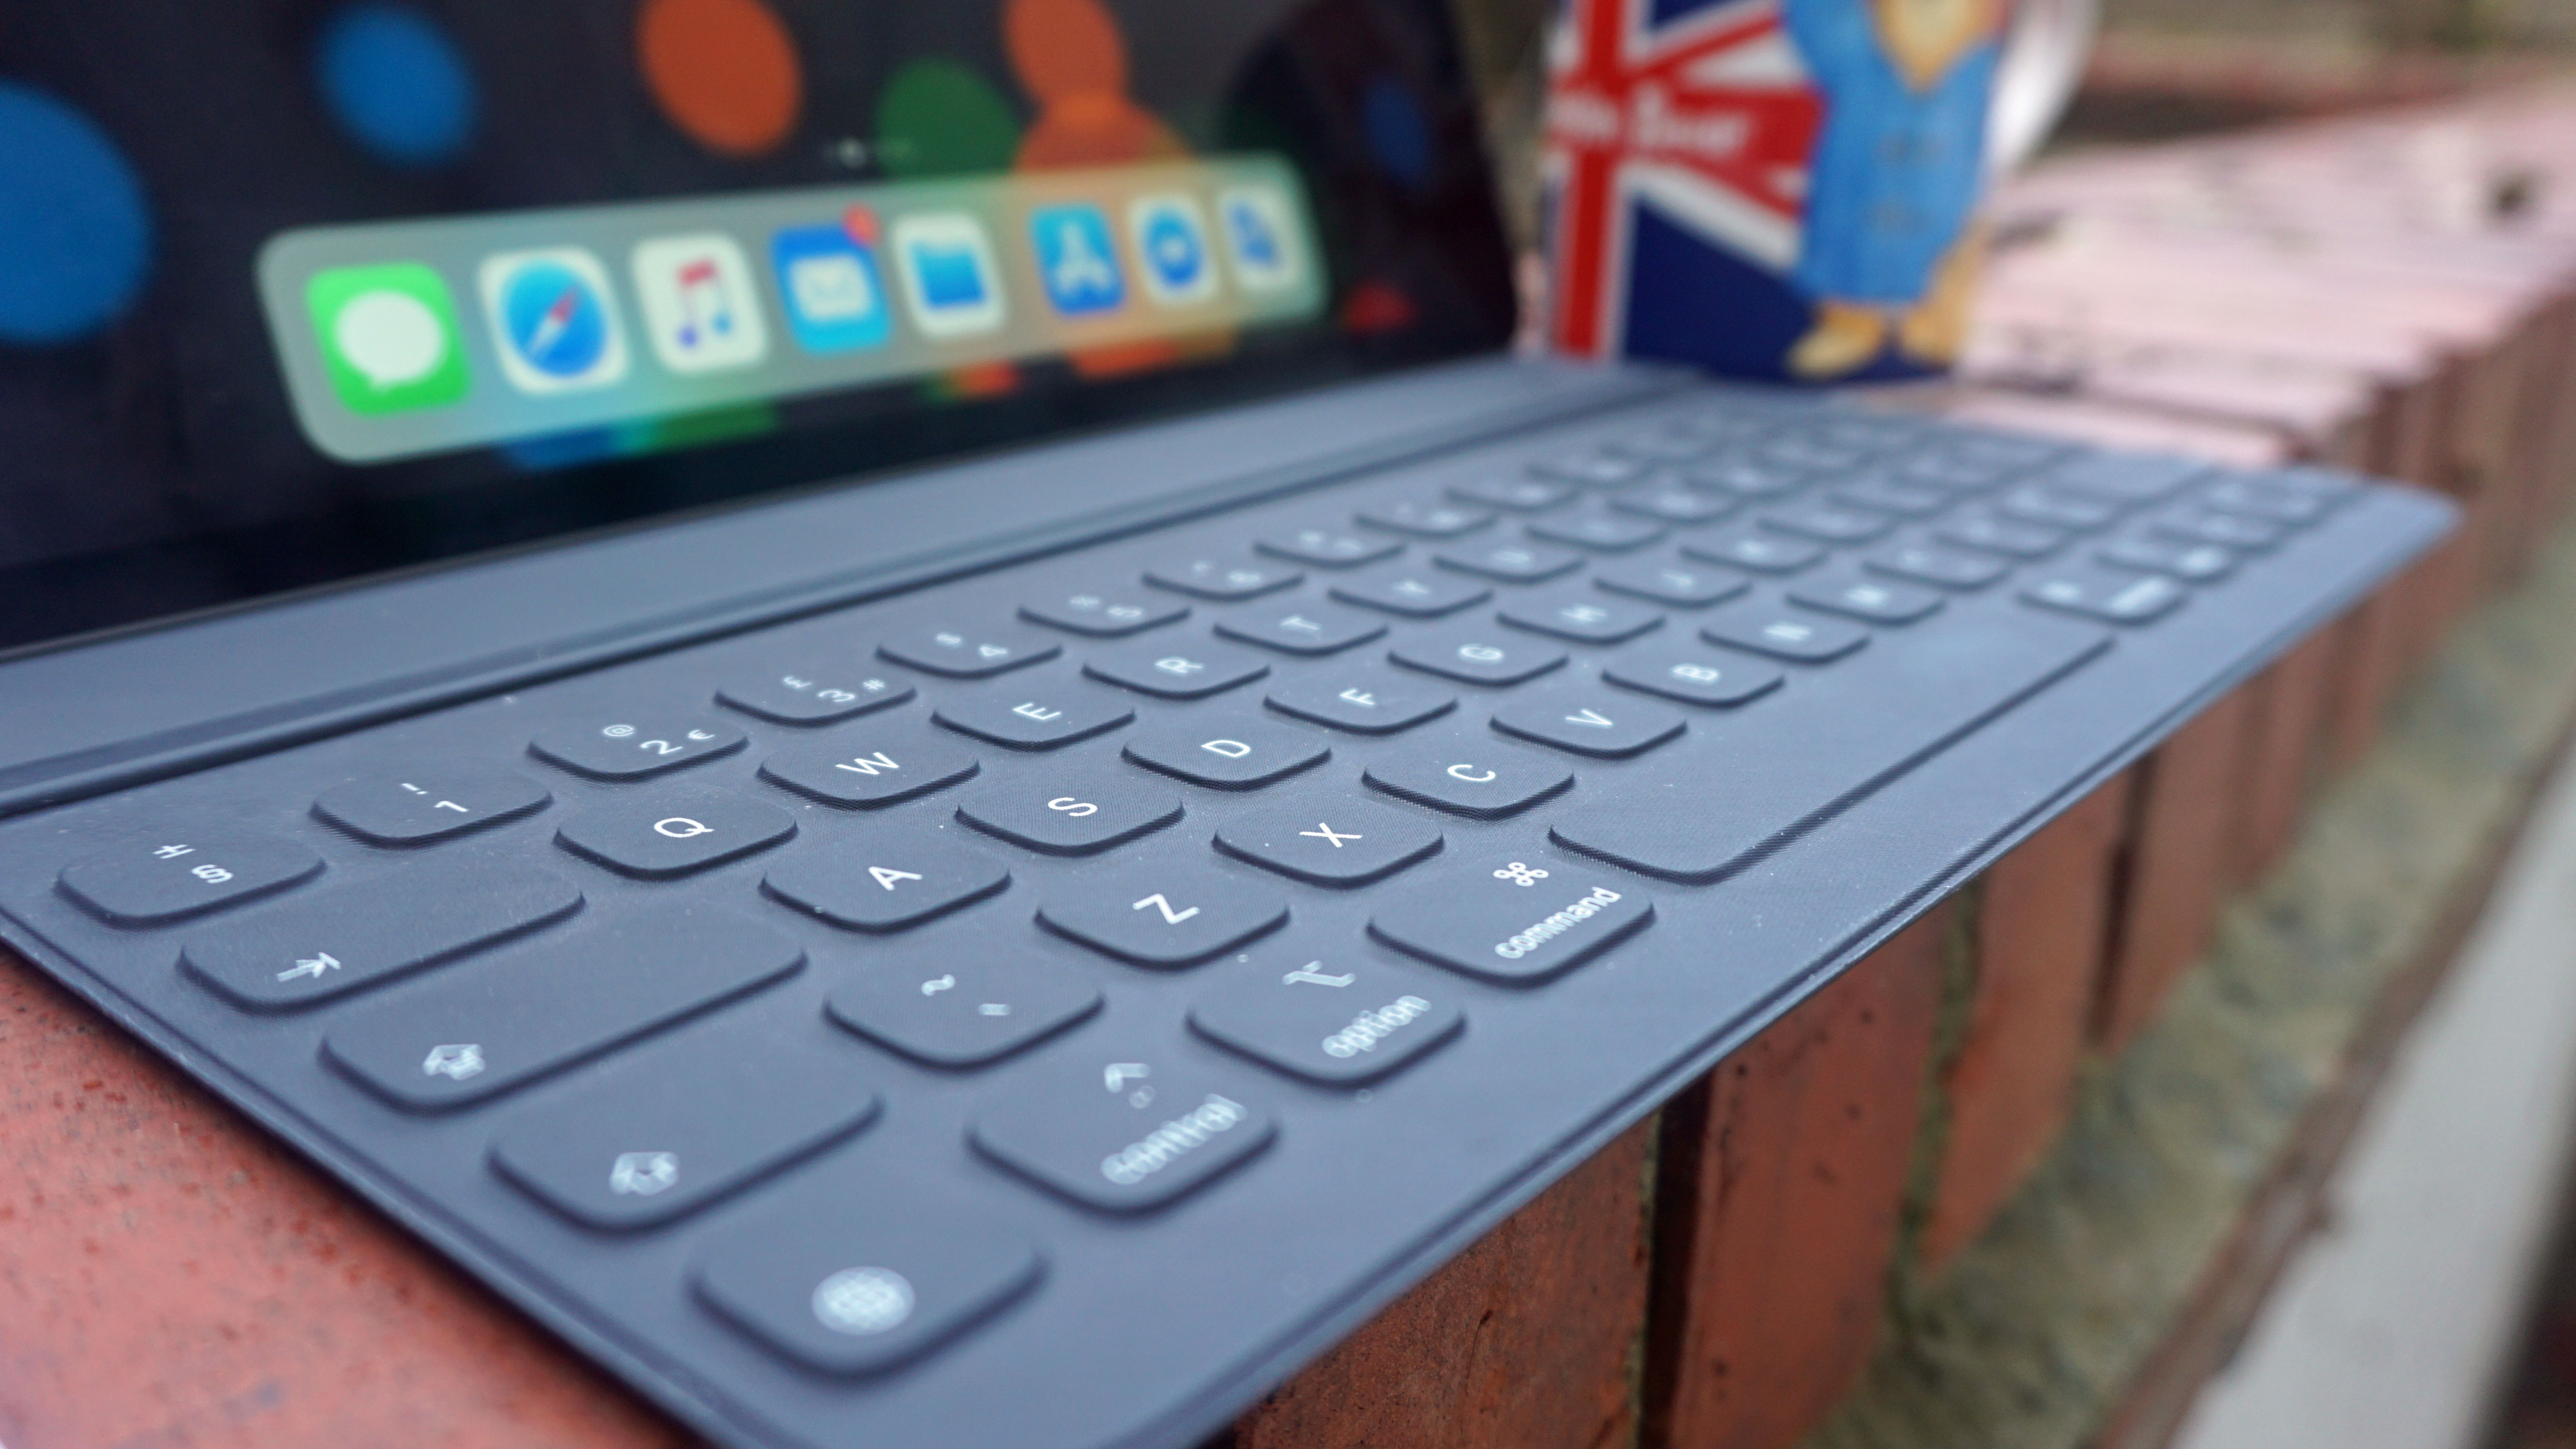 You'll get (key)bored of typing on your screen. Image credit: TechRadar